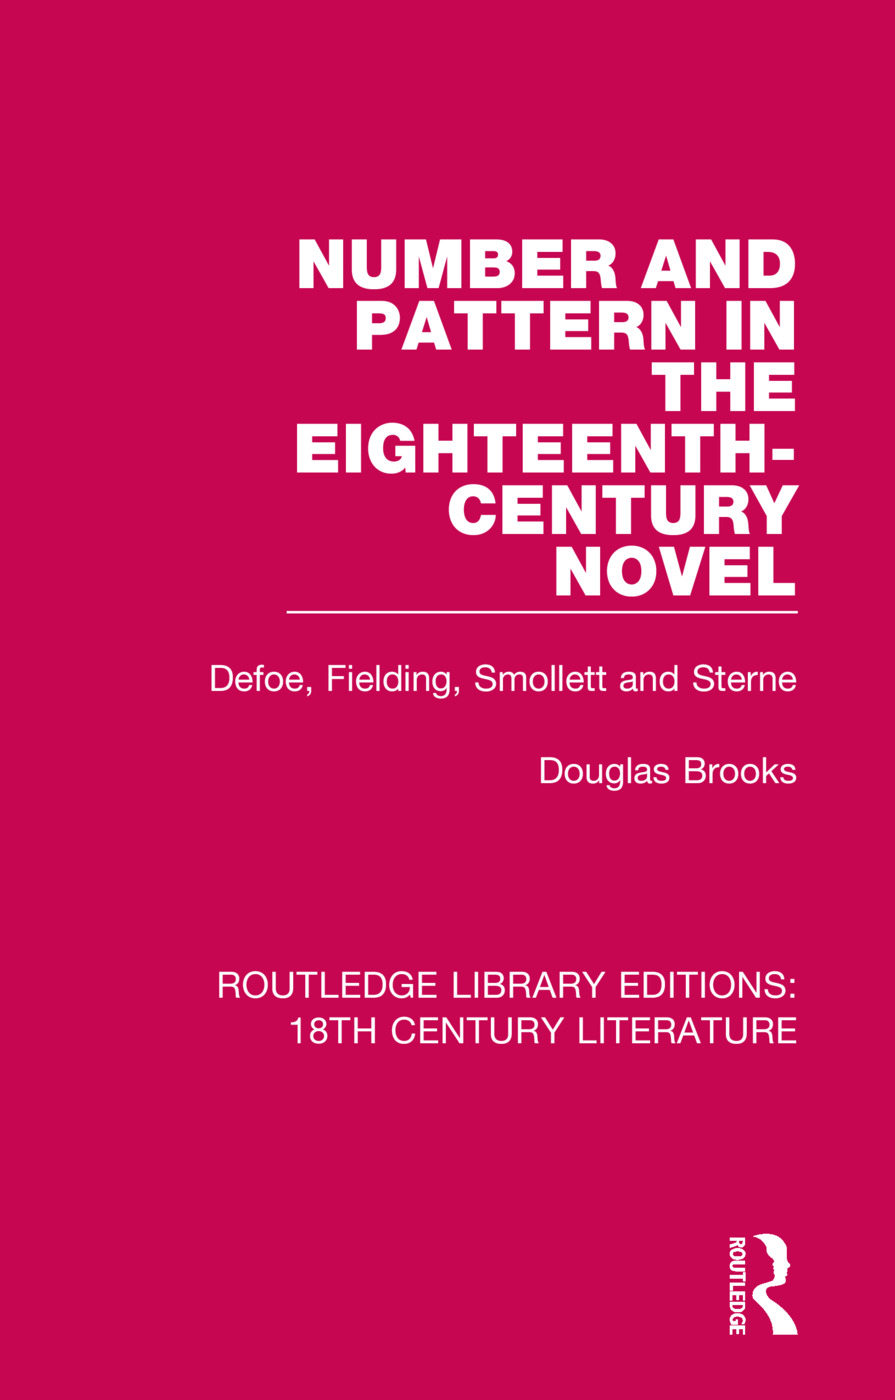 Number and Pattern in the Eighteenth-Century Novel: Defoe, Fielding, Smollett and Sterne, 1st Edition (Hardback) book cover